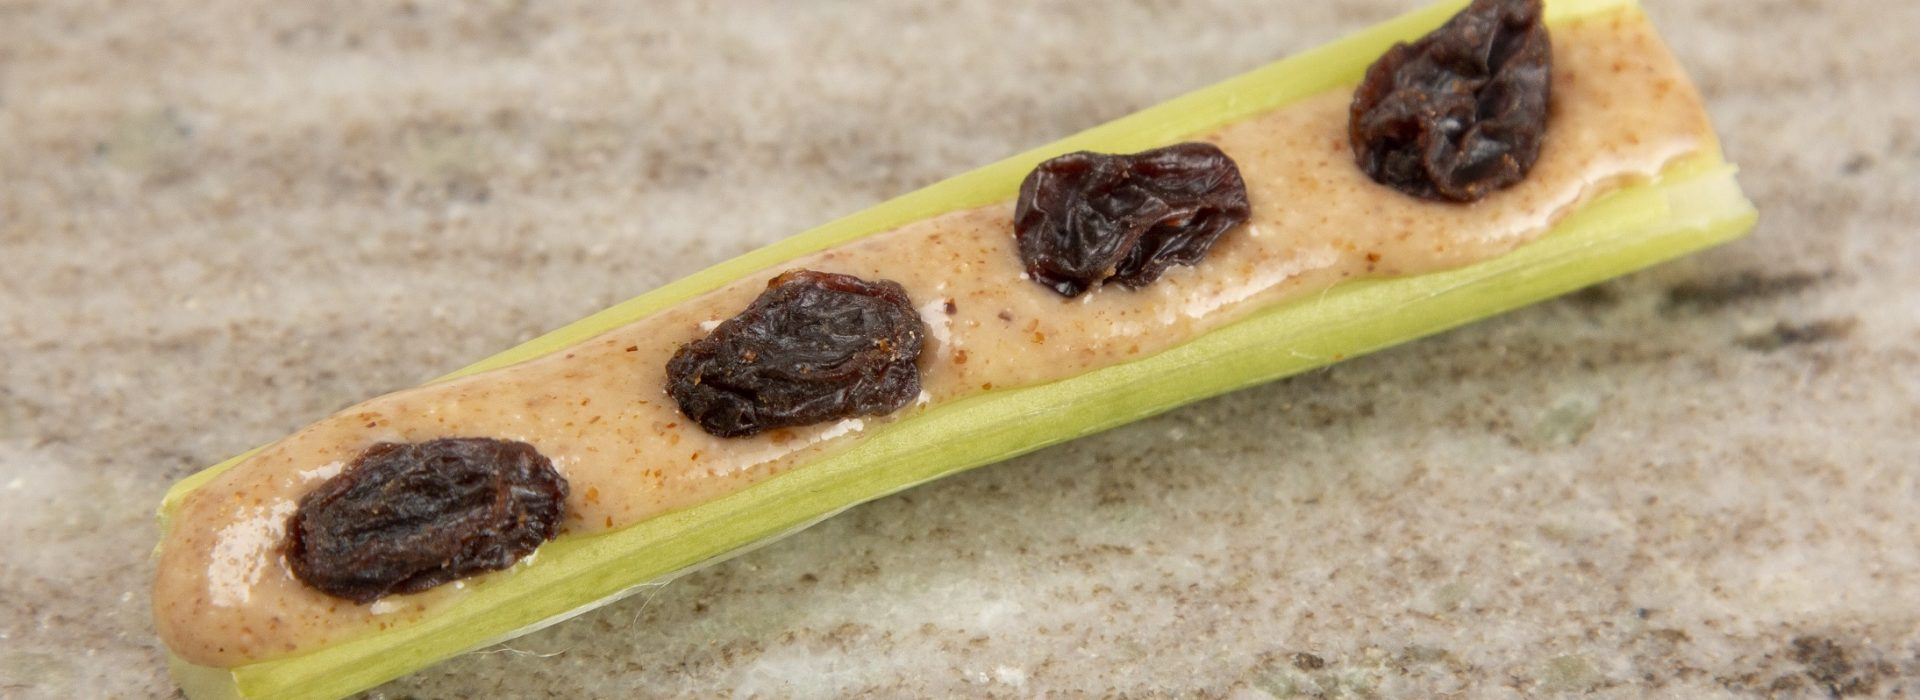 Ants on a Log and Other Fun Kid Snacks for your Small Anteaters